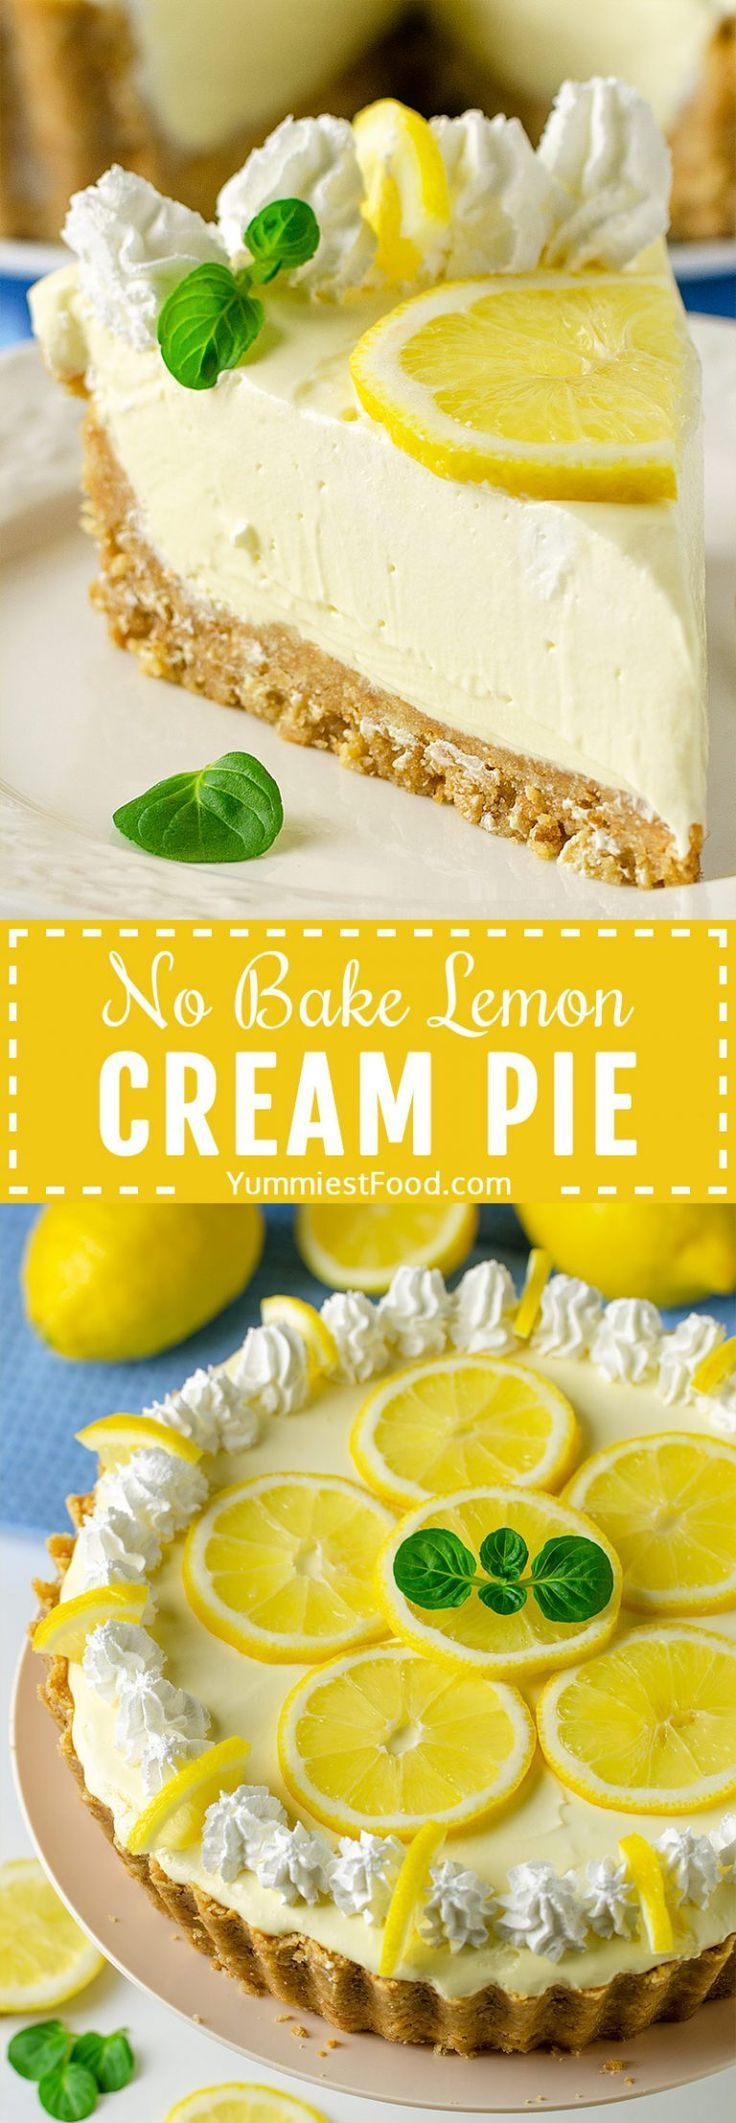 No Bake Lemon Cream Pie #easypierecipes